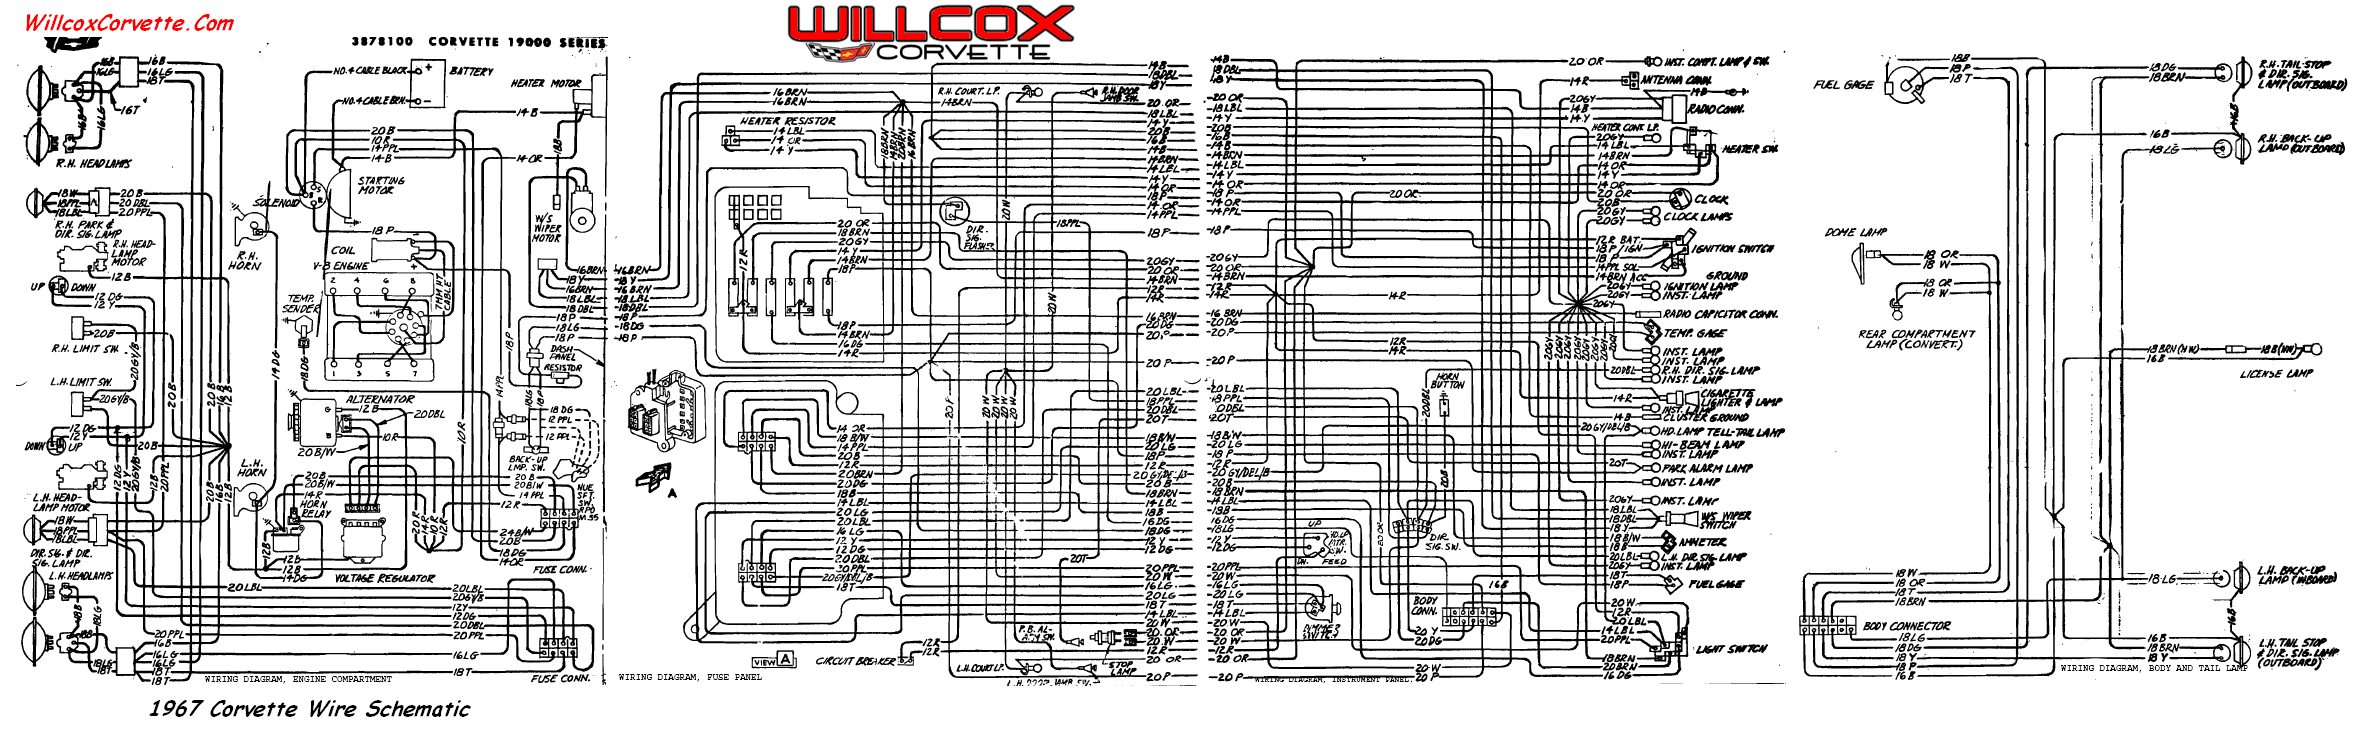 Wire Schematic For Tracing Wires on 1984 Corvette Fuse Box Diagram